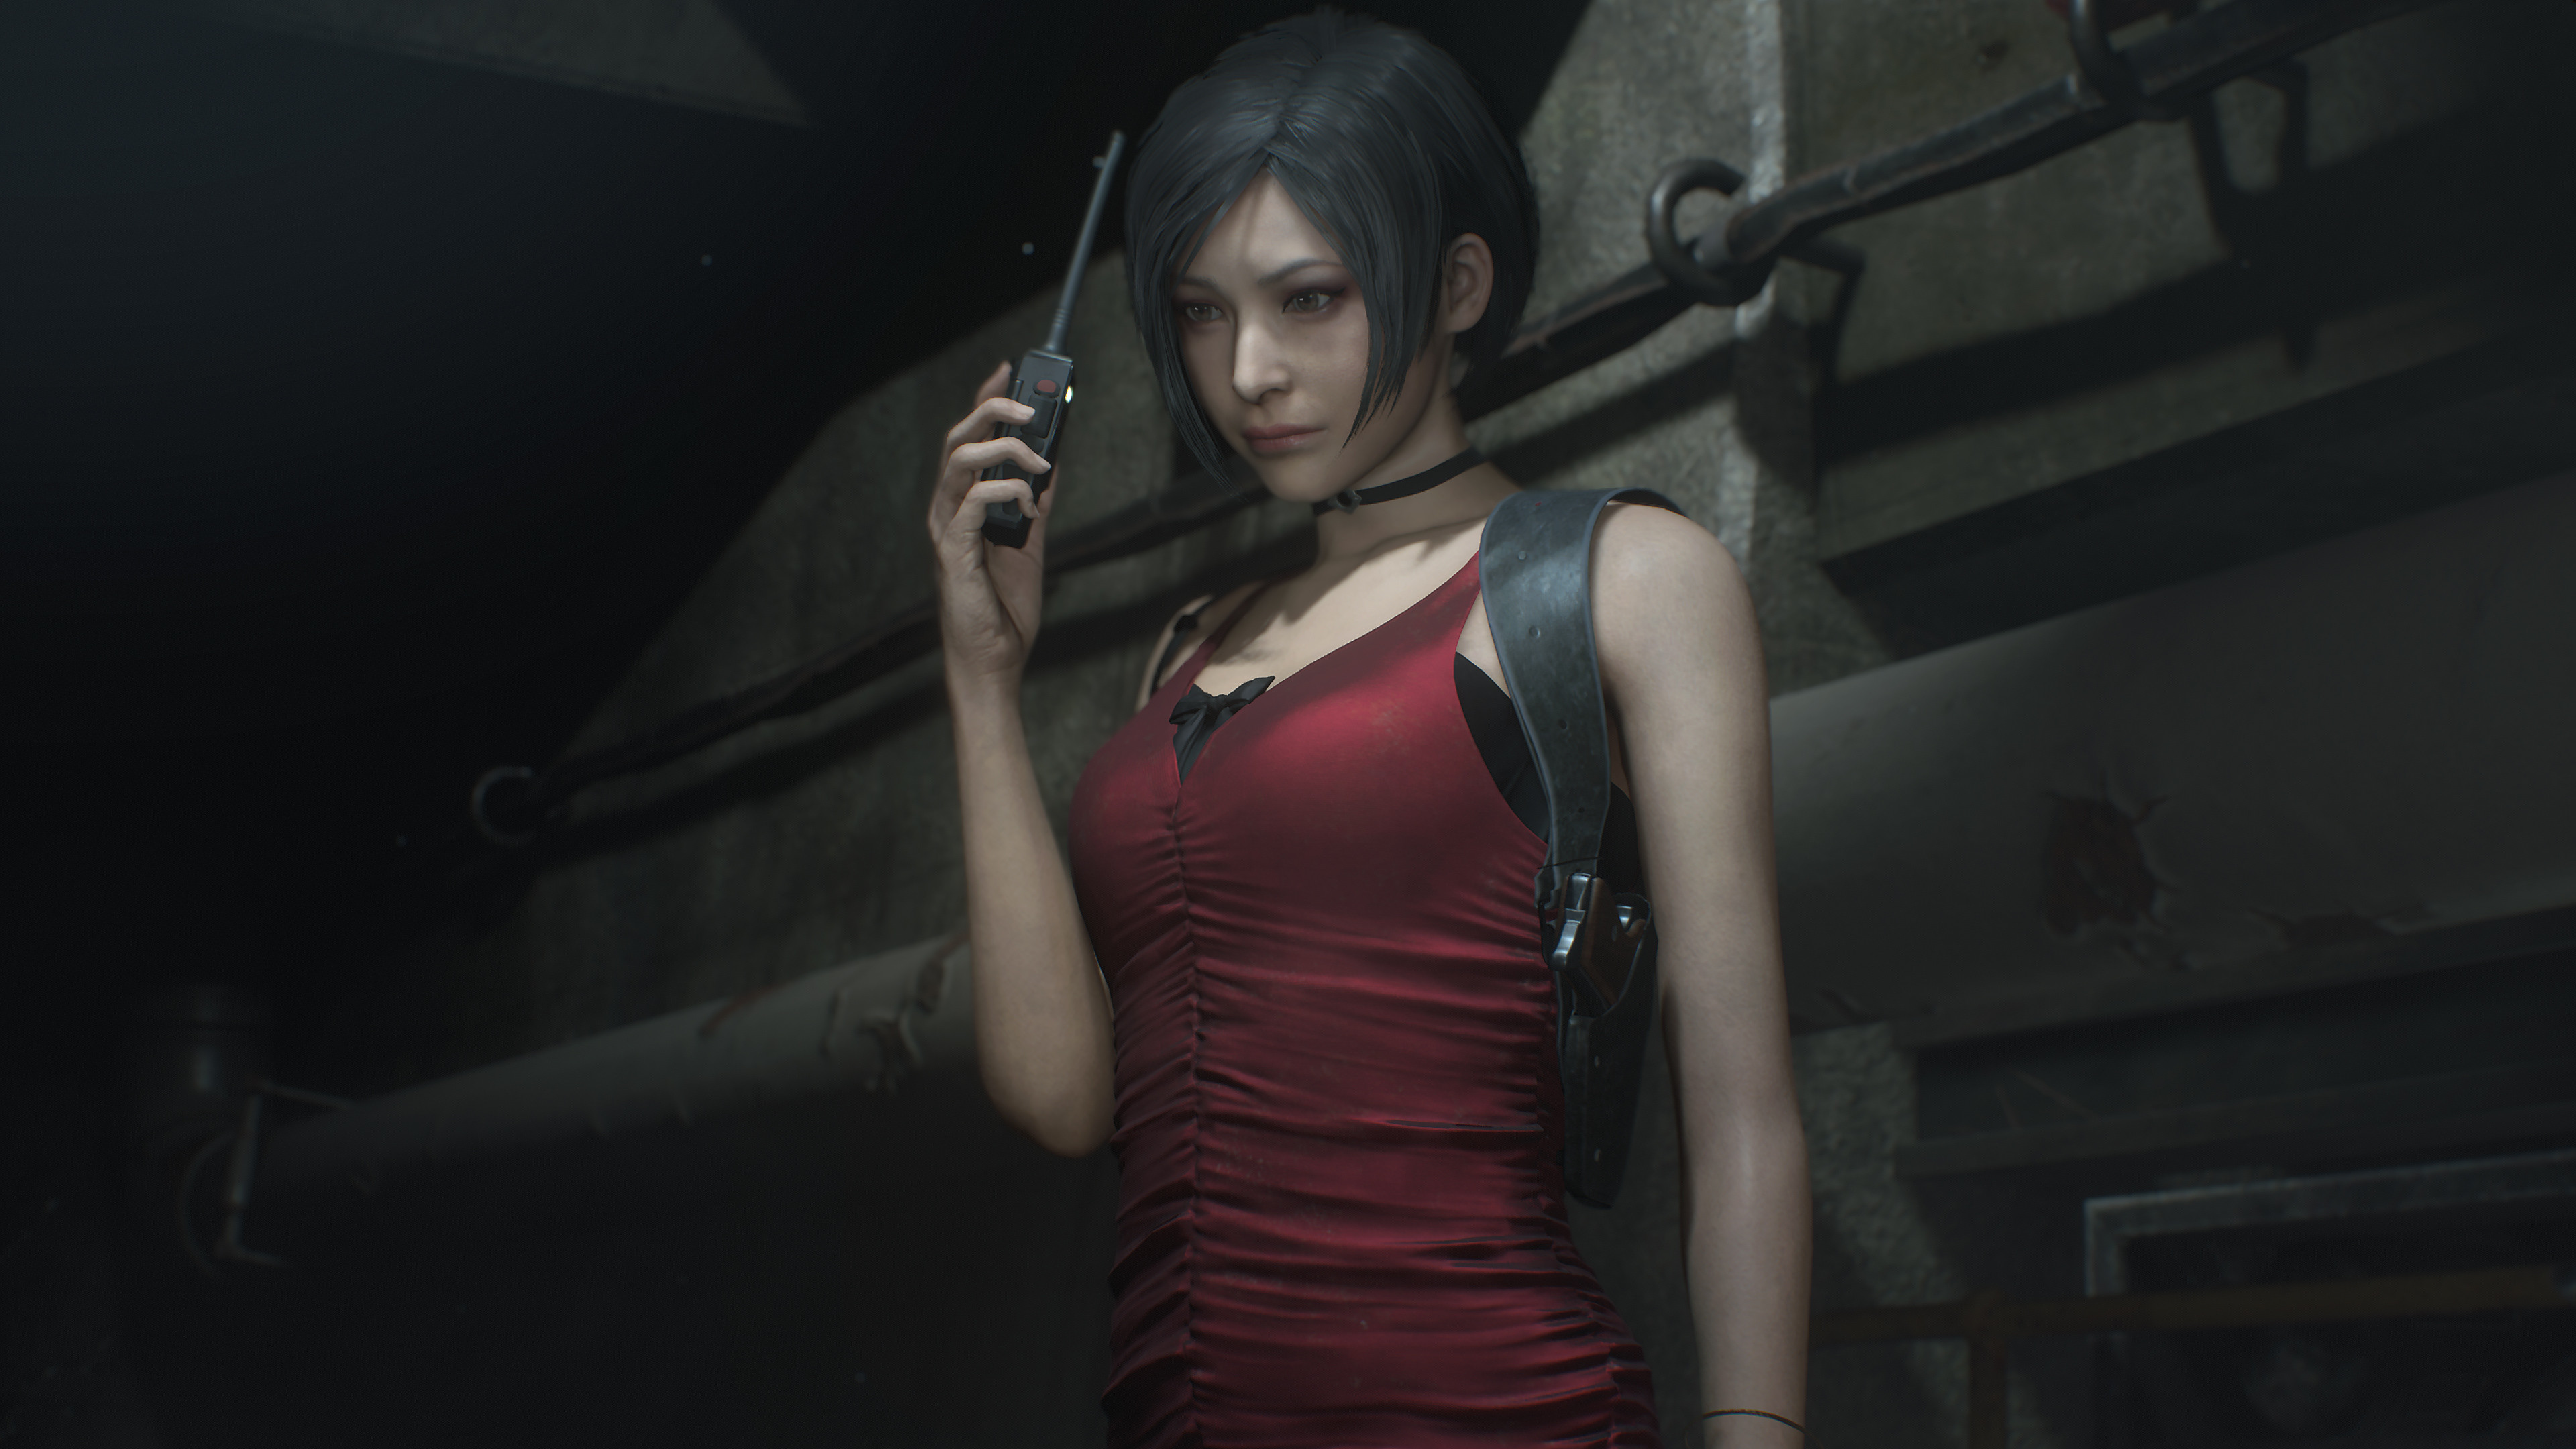 Res: 3840x2160, Claire Redfield Resident Evil 2 2019